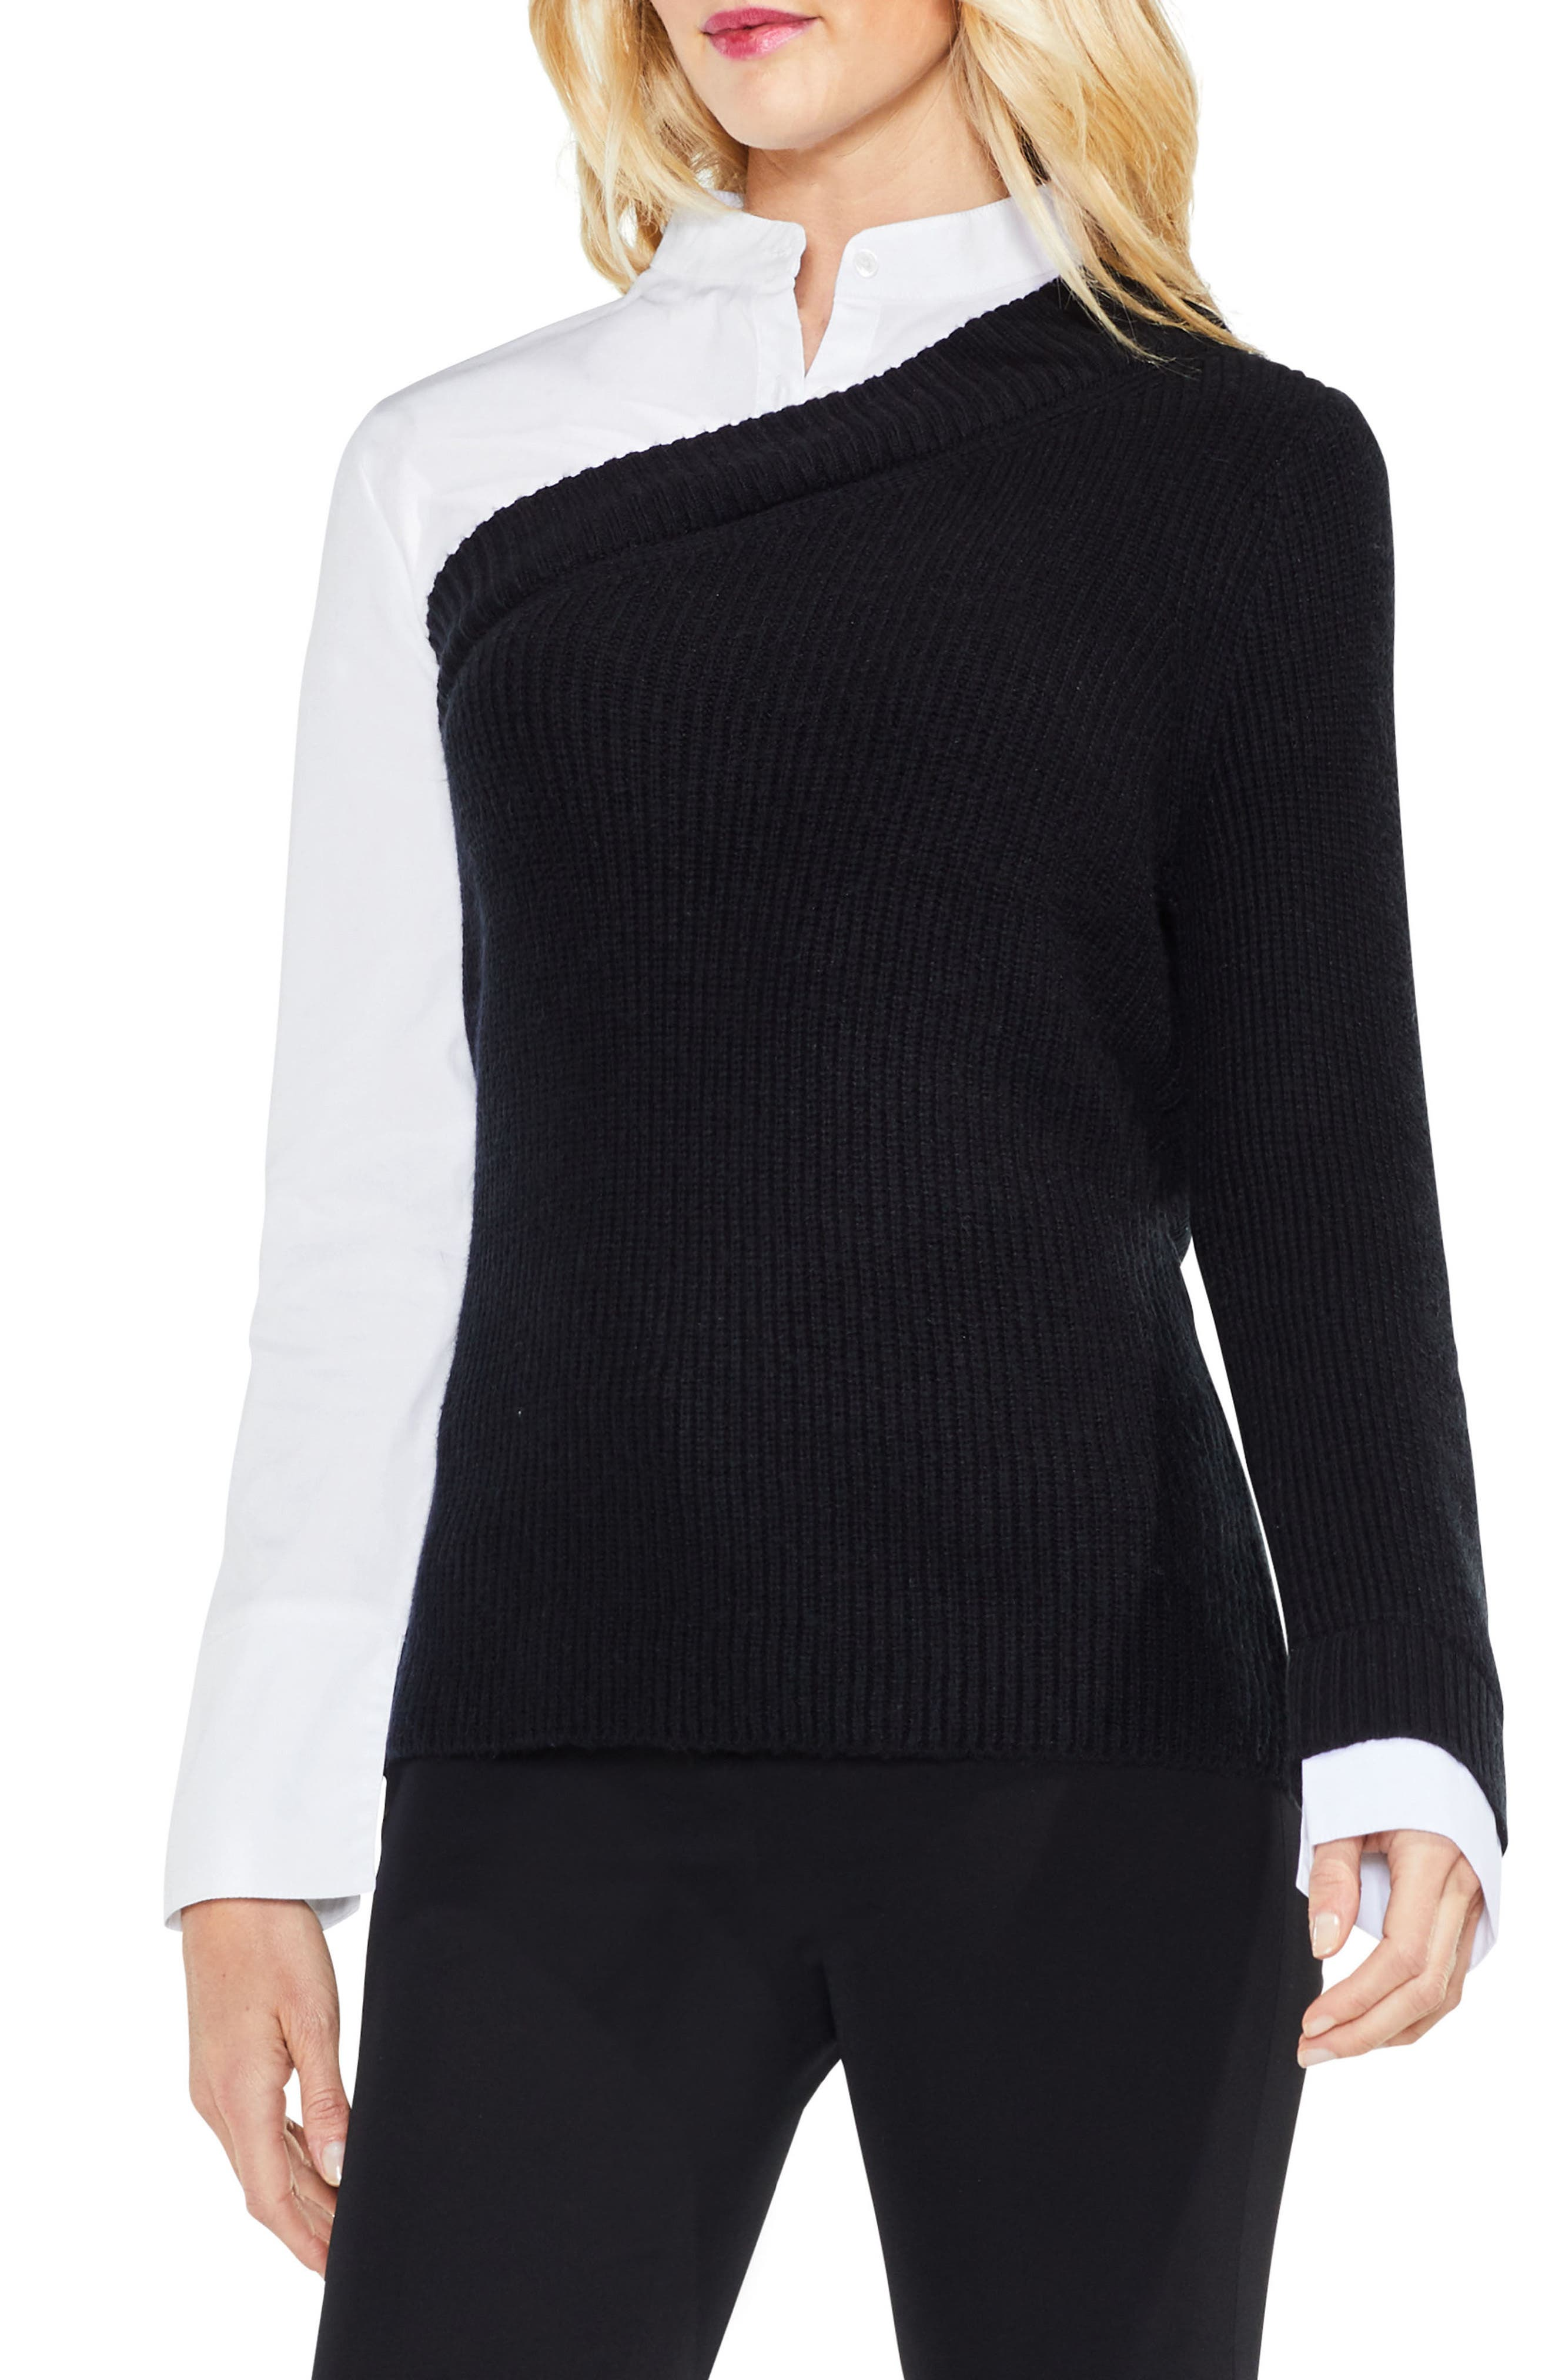 Alternate Image 1 Selected - Vince Camuto Mix Media Layered Sweater